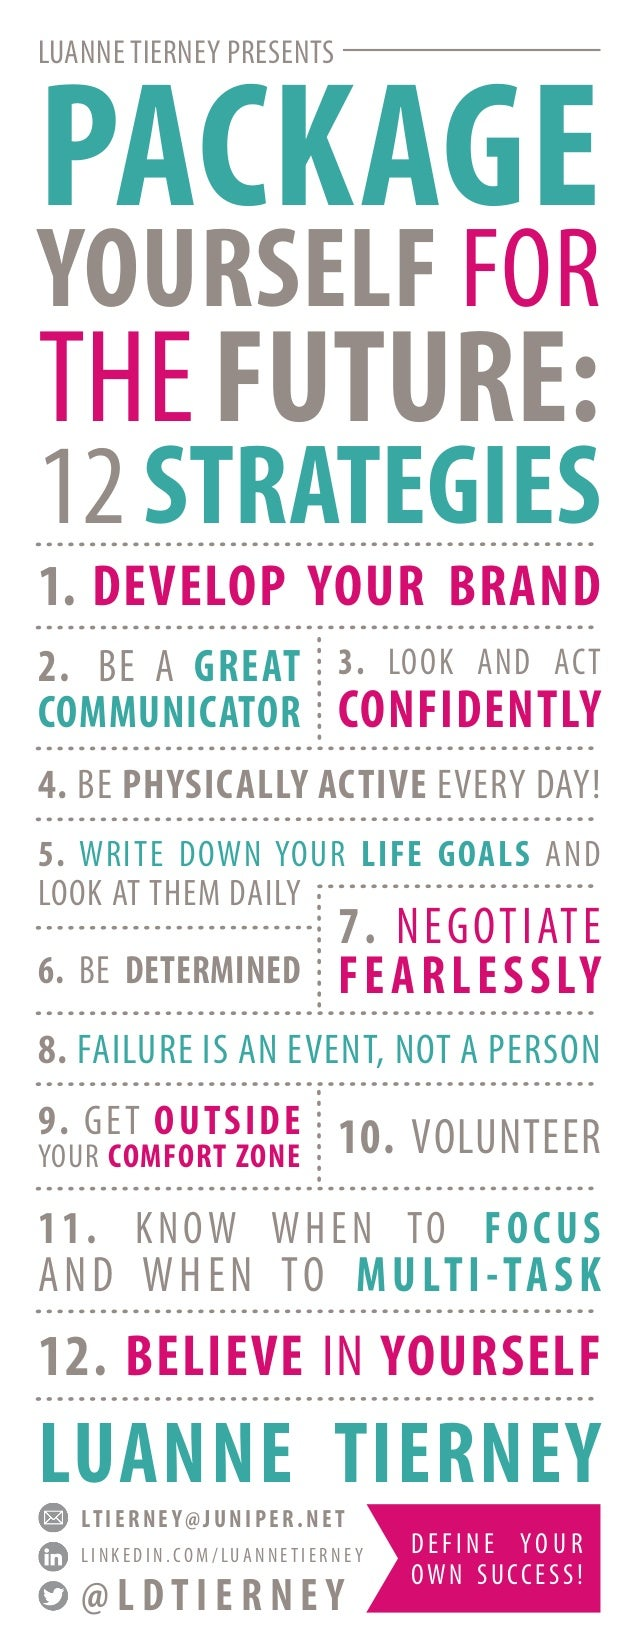 2. BE A GREAT COMMUNICATOR PACKAGE YOURSELF FOR THEFUTURE: 12 STRATEGIES 1. DEVELOP YOUR BRAND 3. LOOK AND ACT CONFIDENTLY...